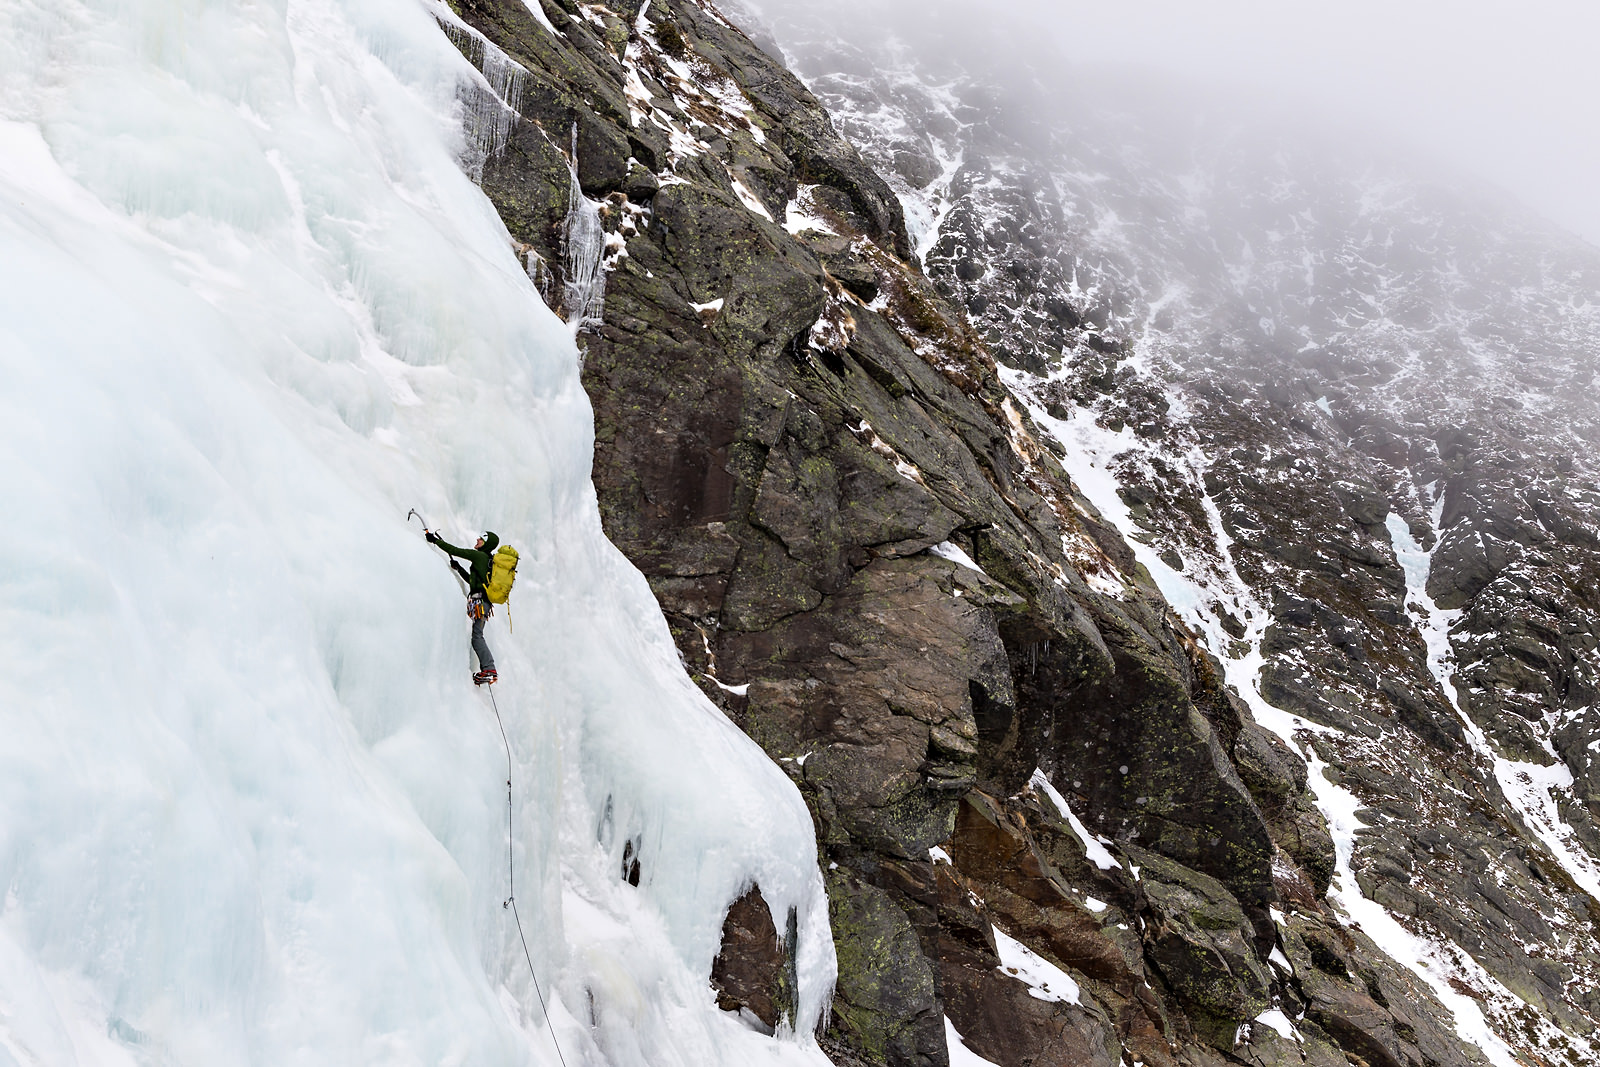 ice-climber-ascending-up-ice-wall-mountian